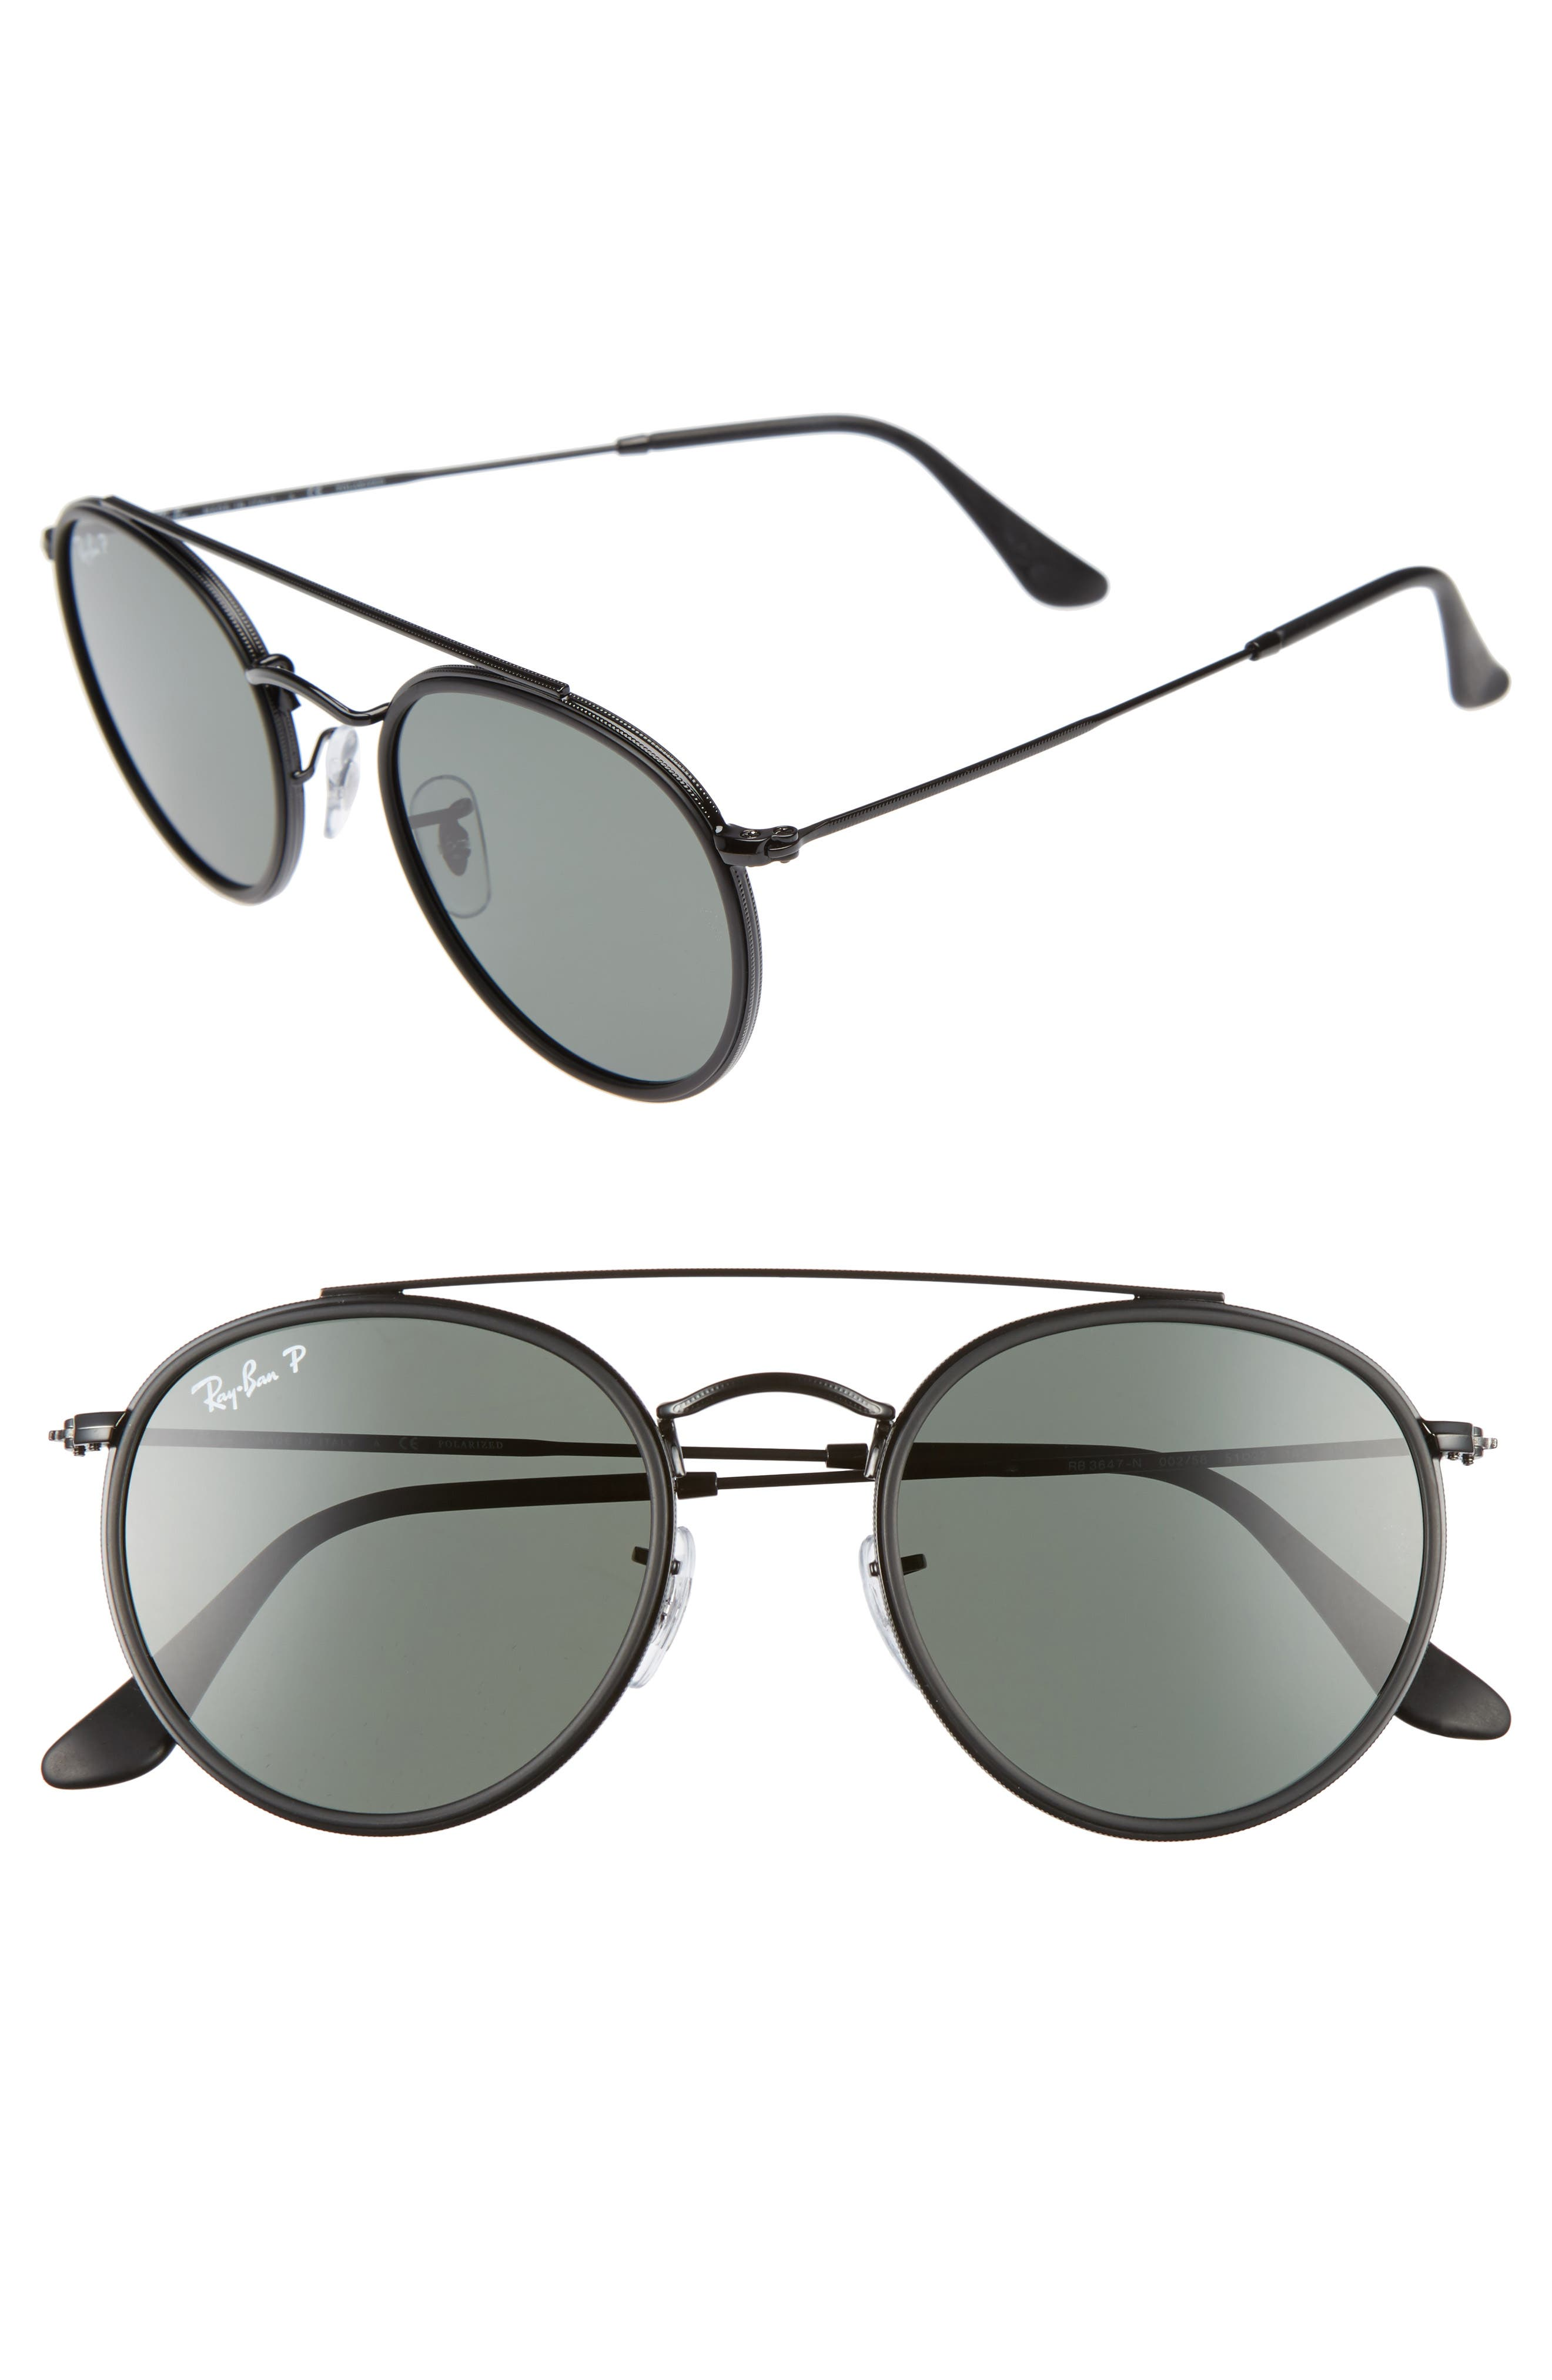 Icons 51mm Round Sunglasses,                         Main,                         color, 018